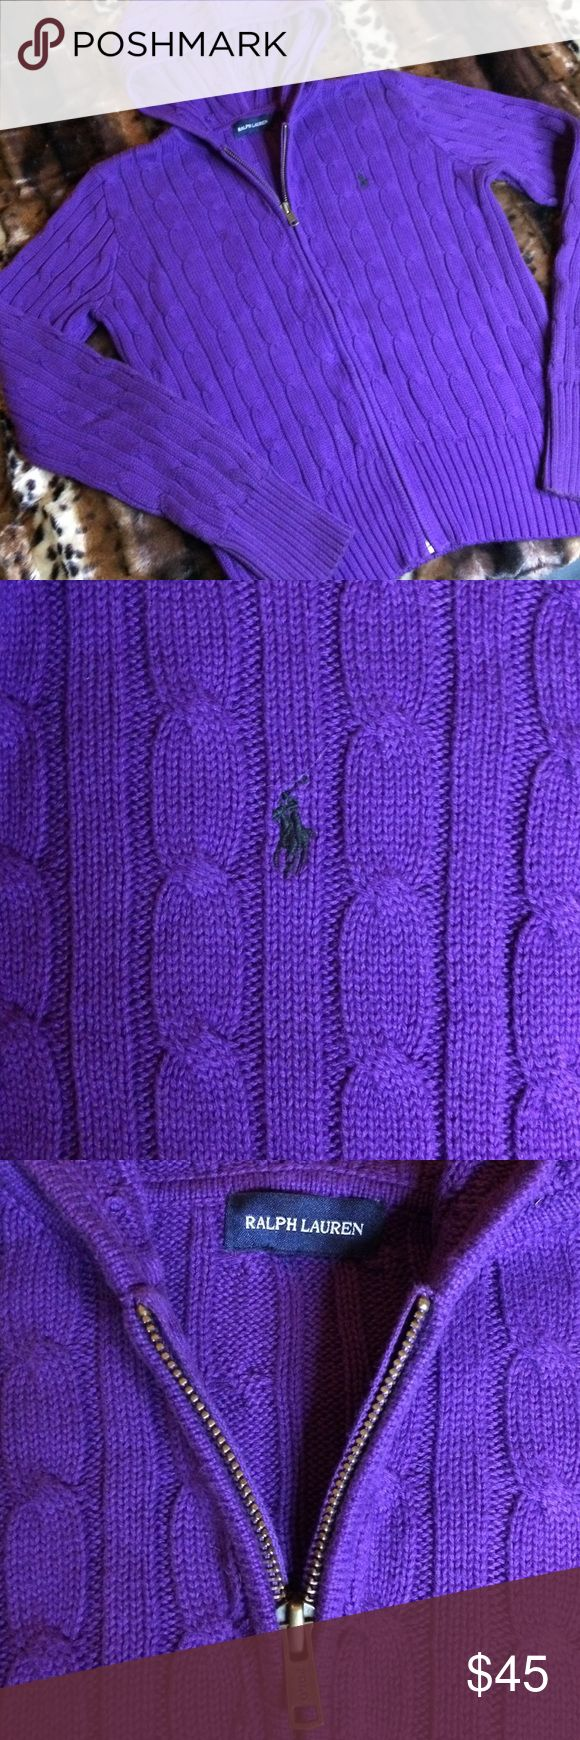 BNWOT Ralph Lauren Kids Classic Cable Knit Zip Up BNWOT Classic Ralph Lauren Cotton Cable Knit Hooded Zip up Sweater in purple with contrasting green polo horse detail.  Polo stamp on zipper.  In PERFECT CONDITION!!! SIZE XL.  Could fit women's sizes XS-S. Ralph Lauren Shirts & Tops Sweaters